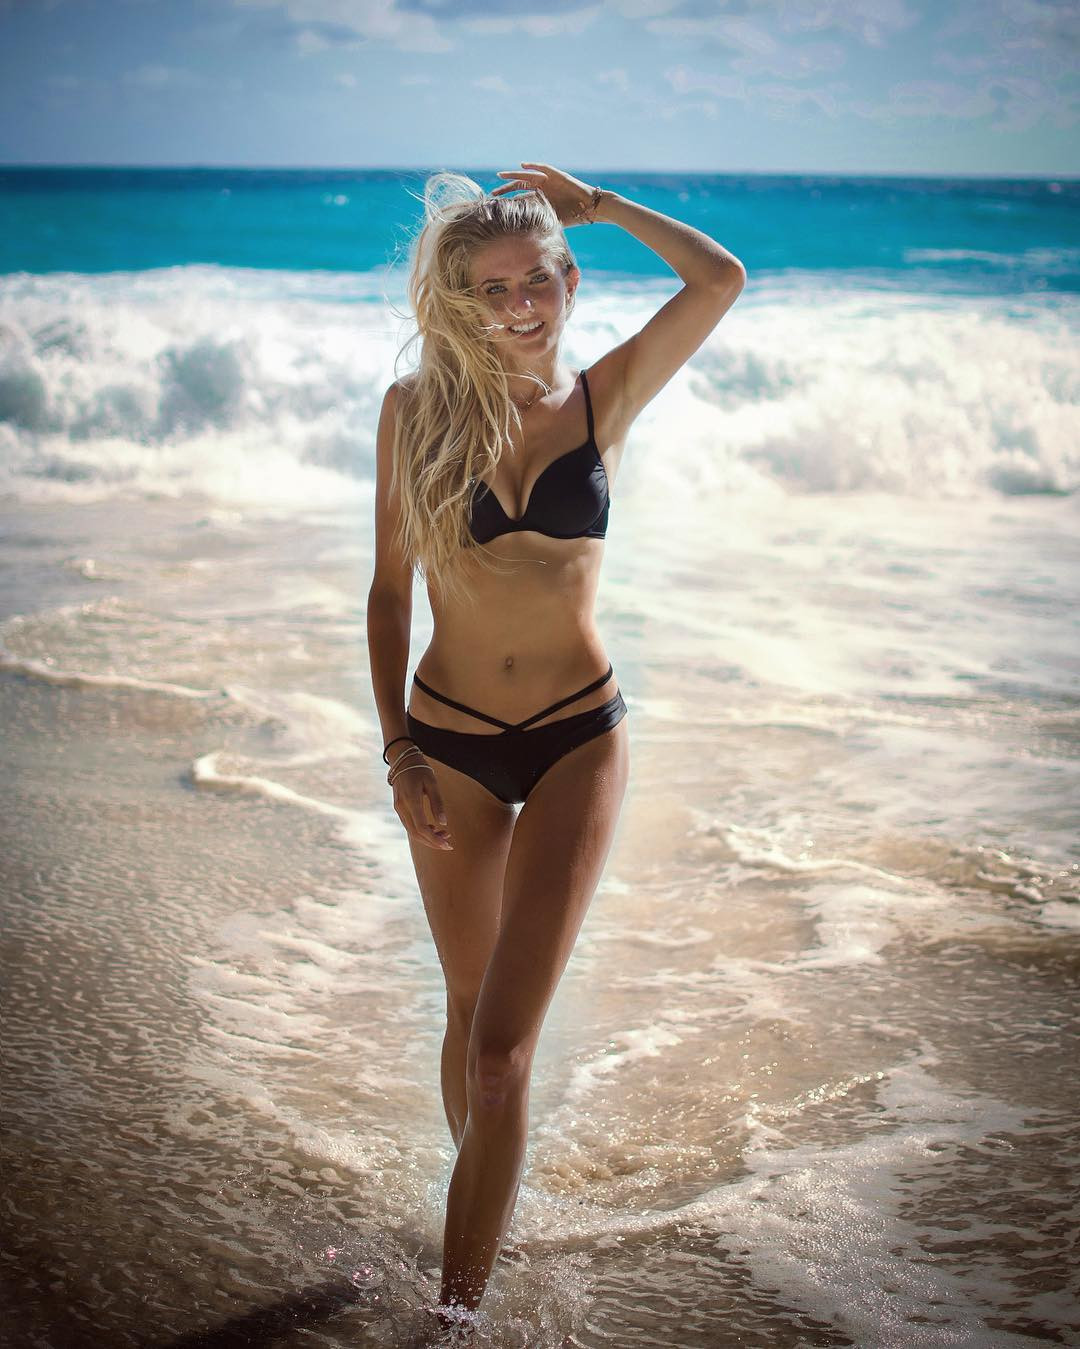 Alica Schmidt Bikini Images By The Sea - Alica Schmidt Net Worth, Pics, Wallpapers, Career and Biography